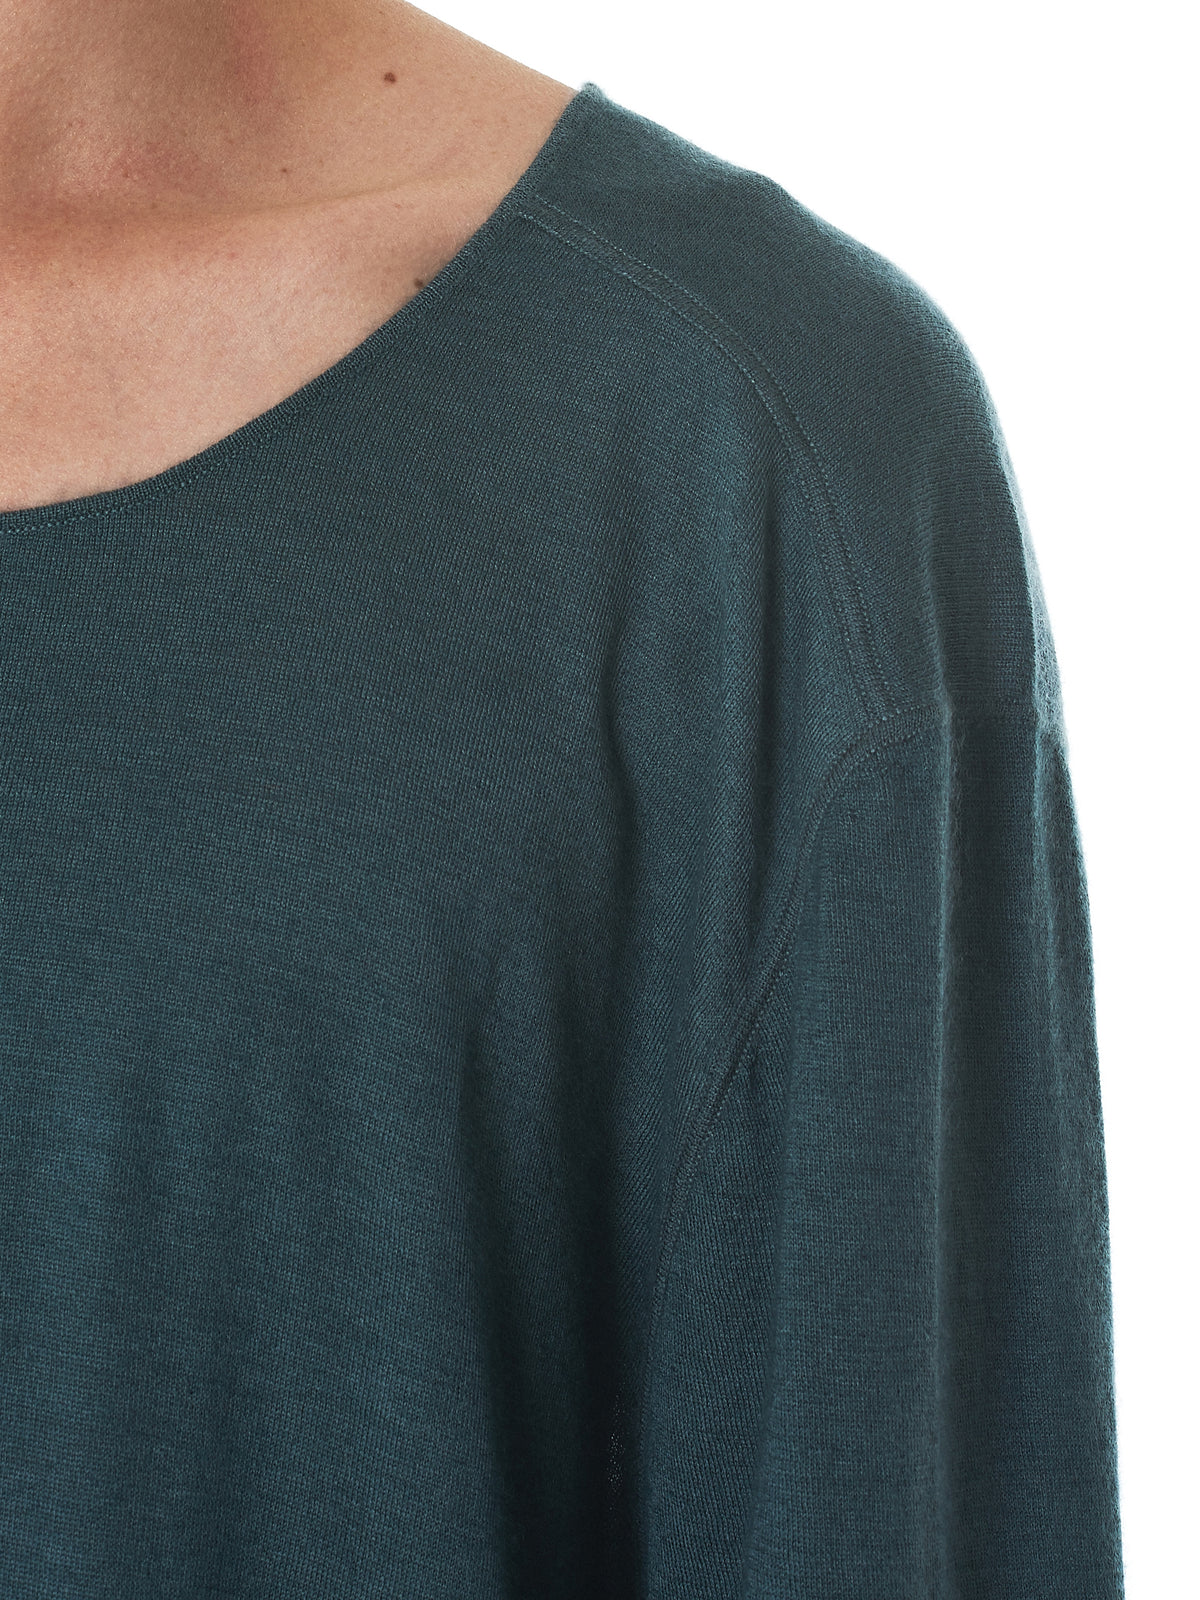 Denis Colomb Cashmere Tee - Hlorenzo collar detail